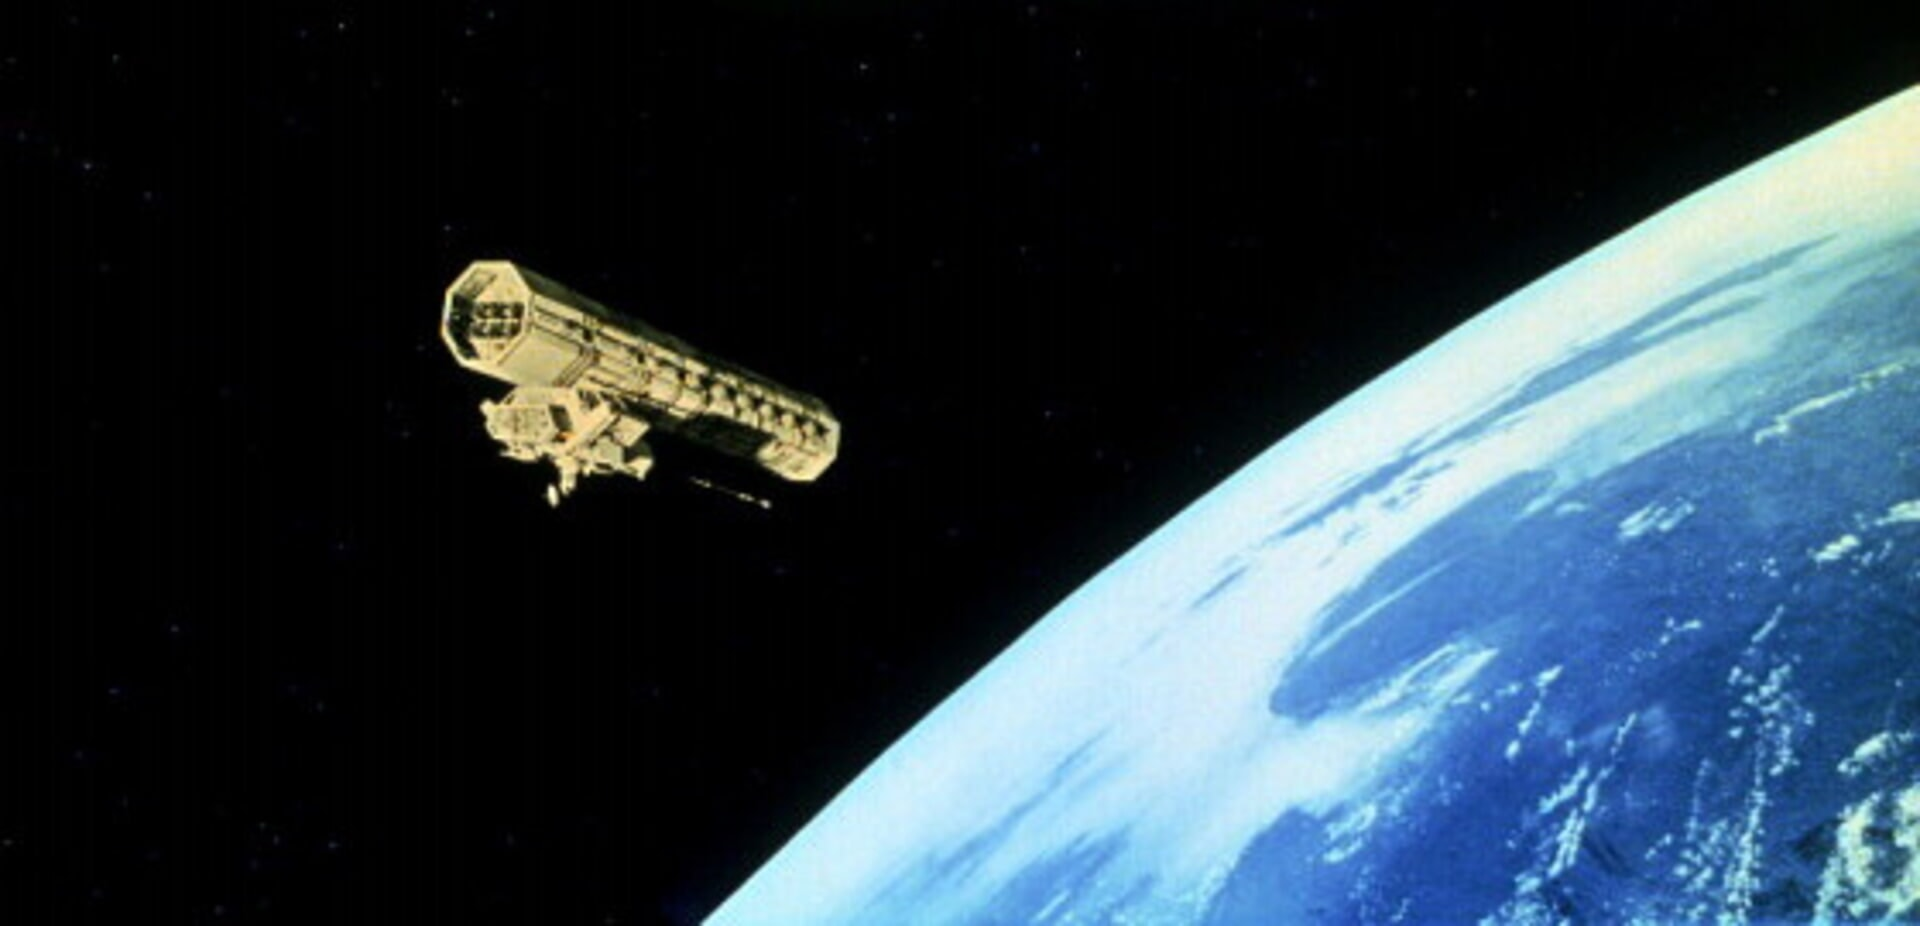 2001: A Space Odyssey - Image 3